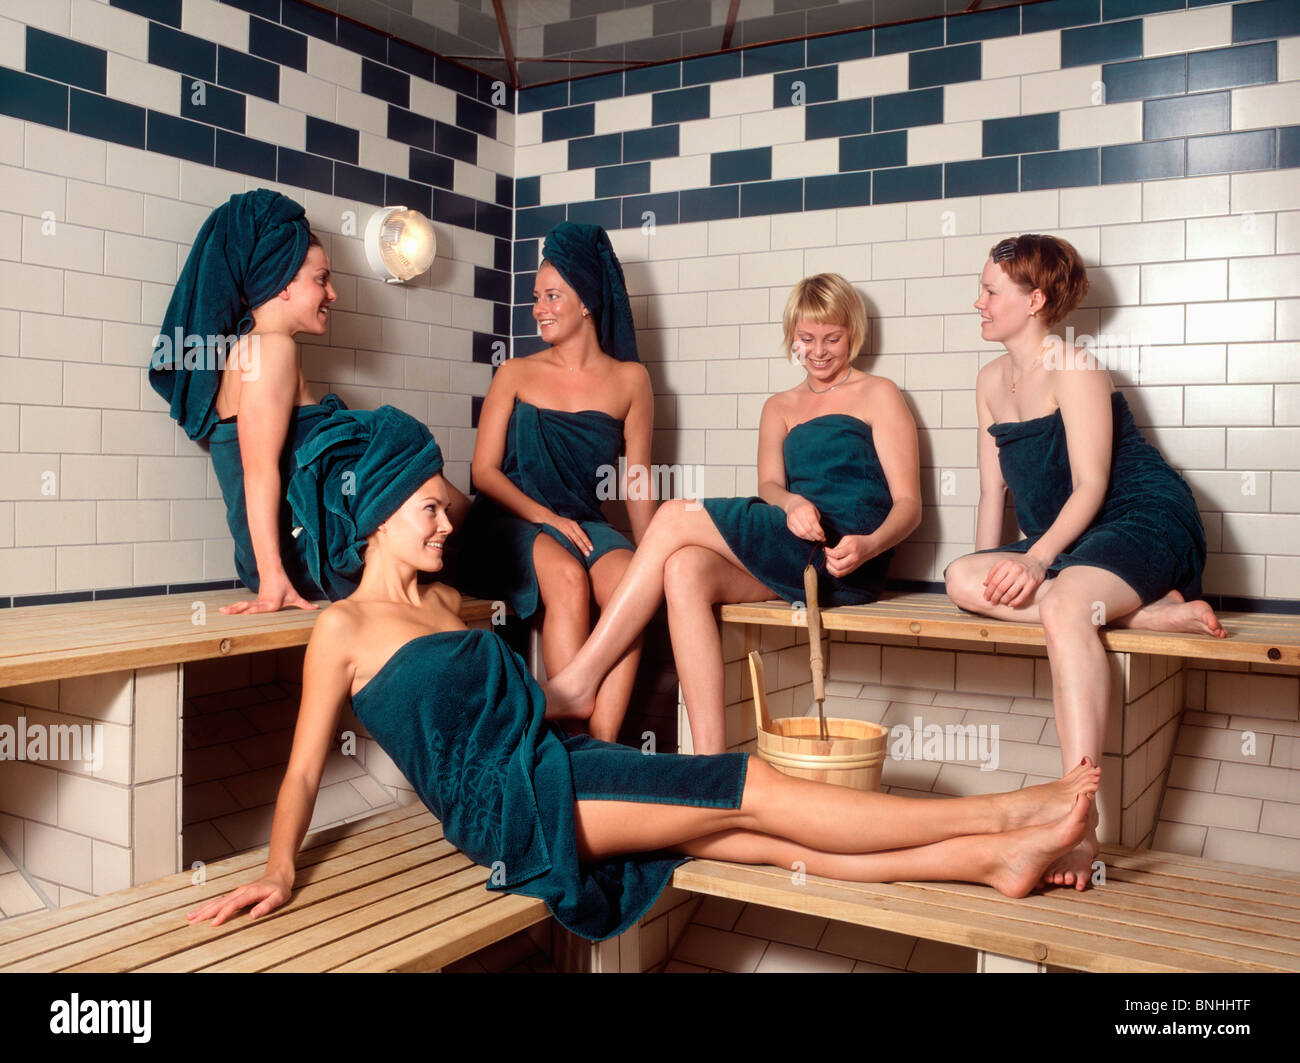 Sweden Stockholm Group Women Sauna 20-30 years Adult Adults Bare ...